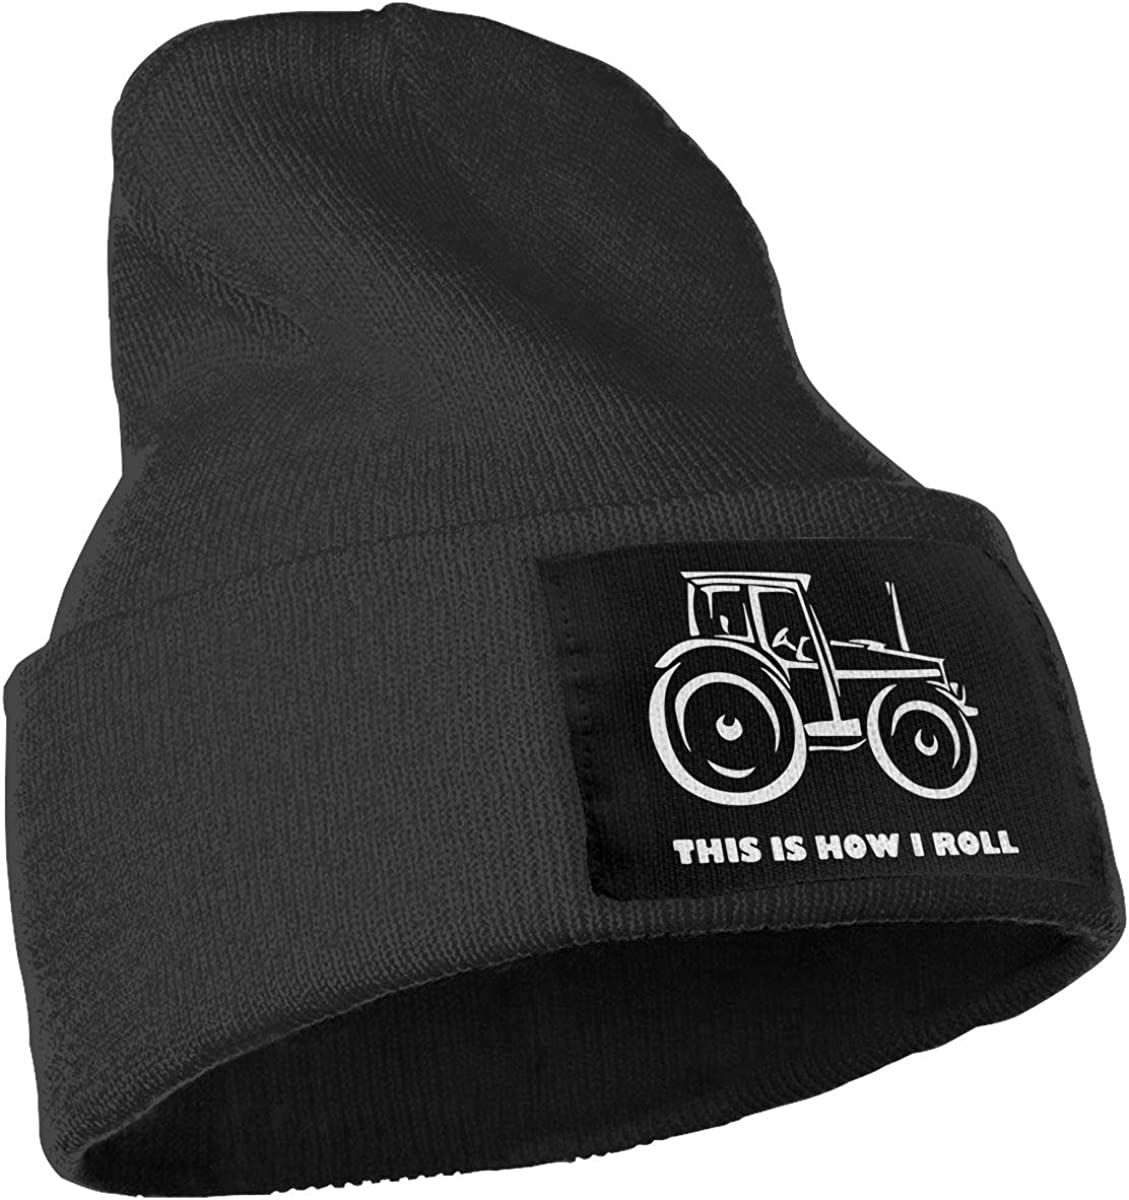 COLLJL-8 Unisex This is How I Roll Farming Farmer Tractor Outdoor Warm Knit Beanies Hat Soft Winter Skull Caps